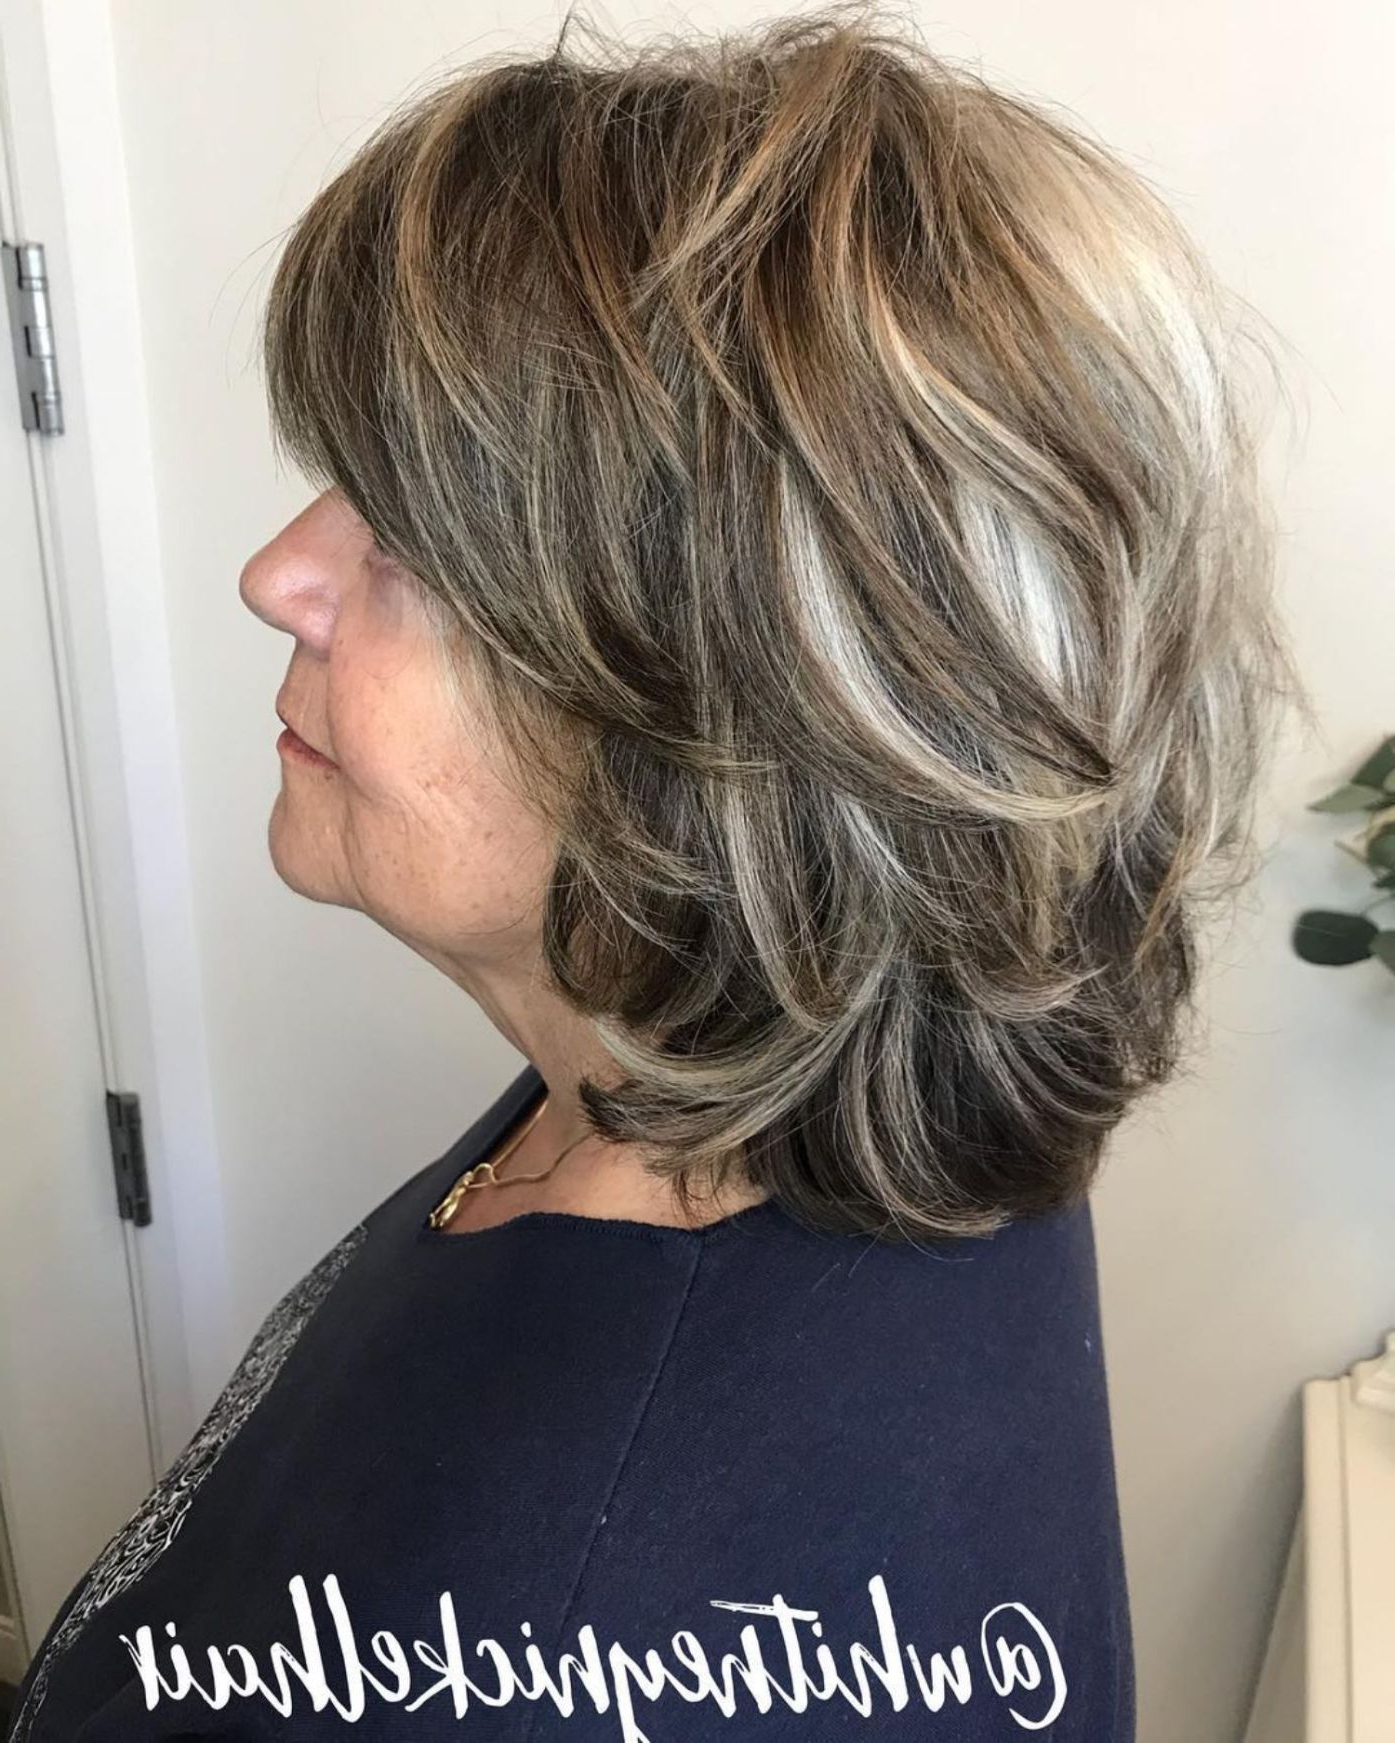 80 Best Modern Hairstyles And Haircuts For Women Over 50 In With Piece Y Golden Bob Hairstyles With Silver Highlights (View 12 of 20)